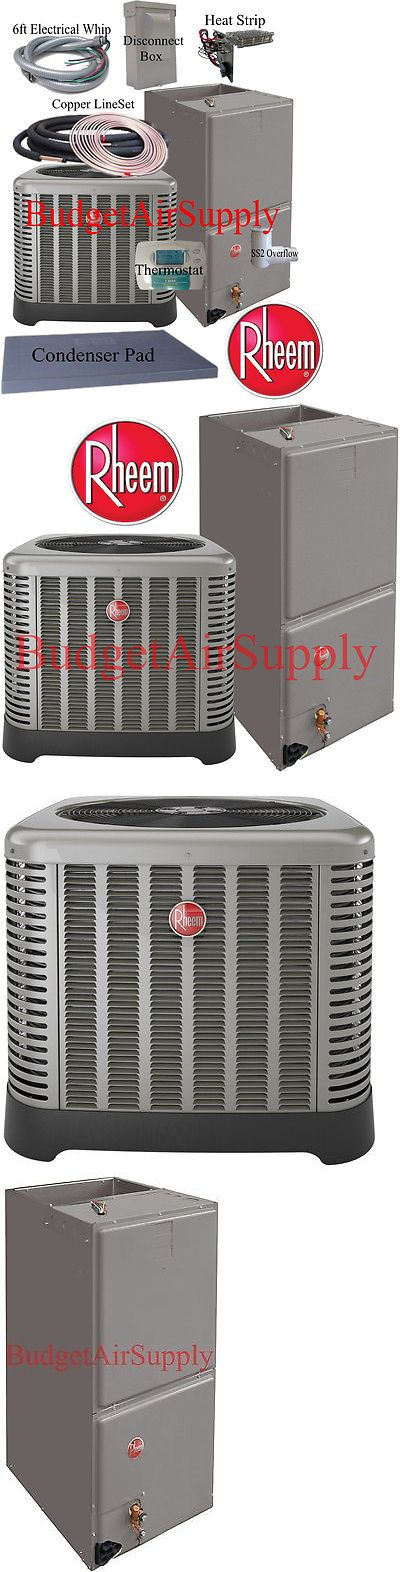 Air Conditioners 69202: Rheem Ruud Classic 3 Ton 14 Seer Heat Pump Rp1436aj+Rh1t3617st+50Ft Install Kit -> BUY IT NOW ONLY: $2165 on eBay!